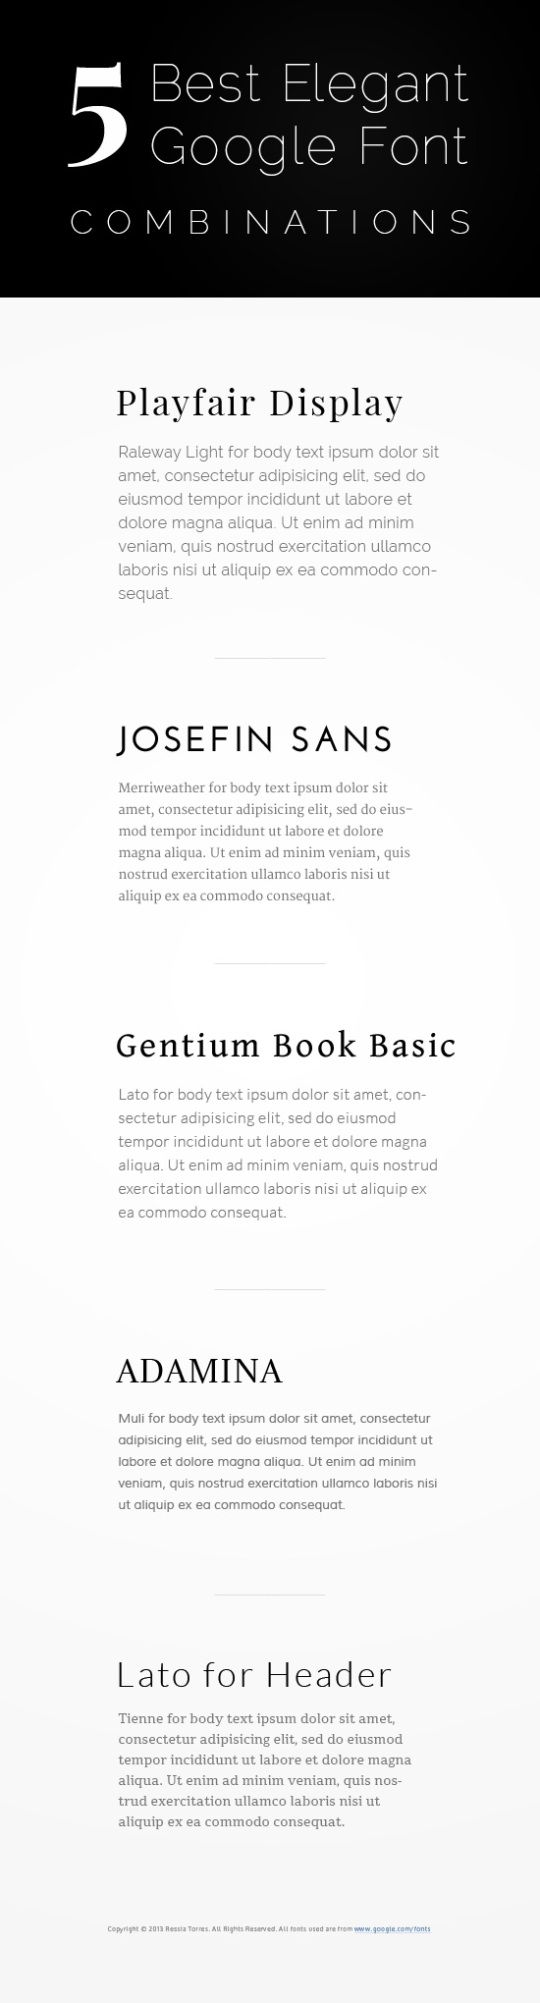 5 best elegant google font combinations - Best Font For Resumes